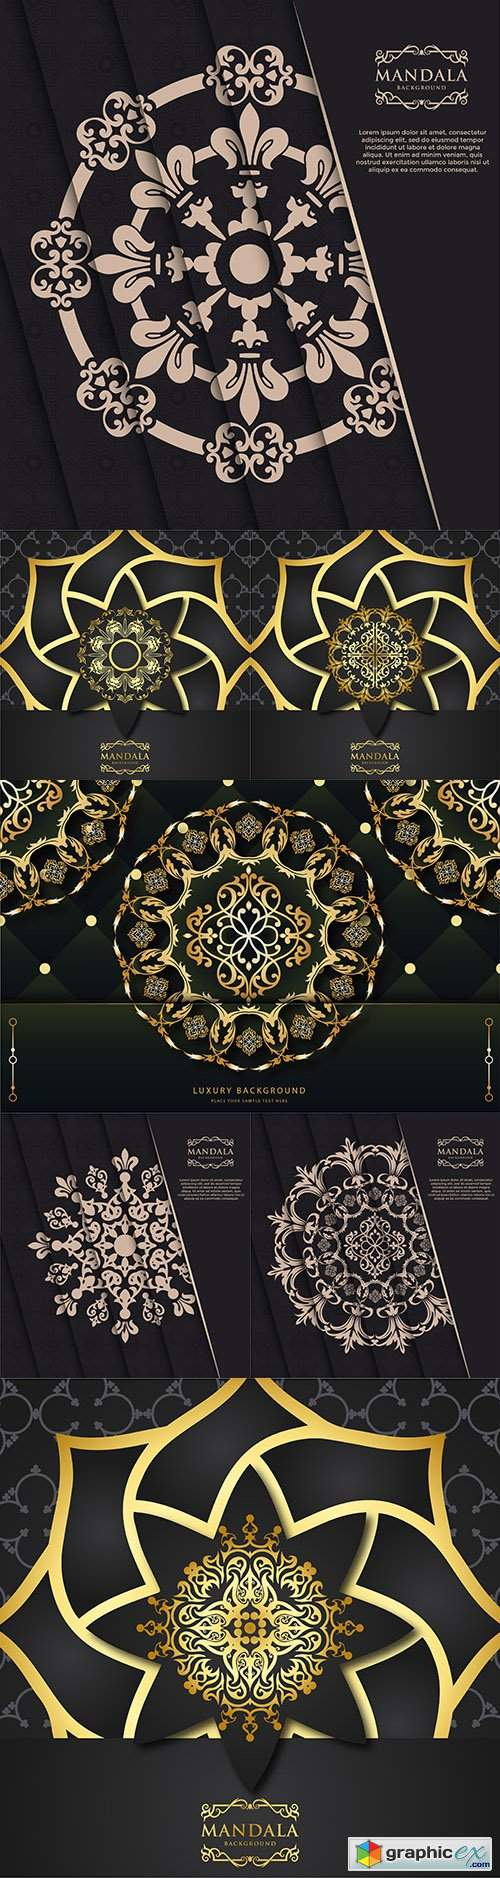 Luxury mandala decorative ornament design gold